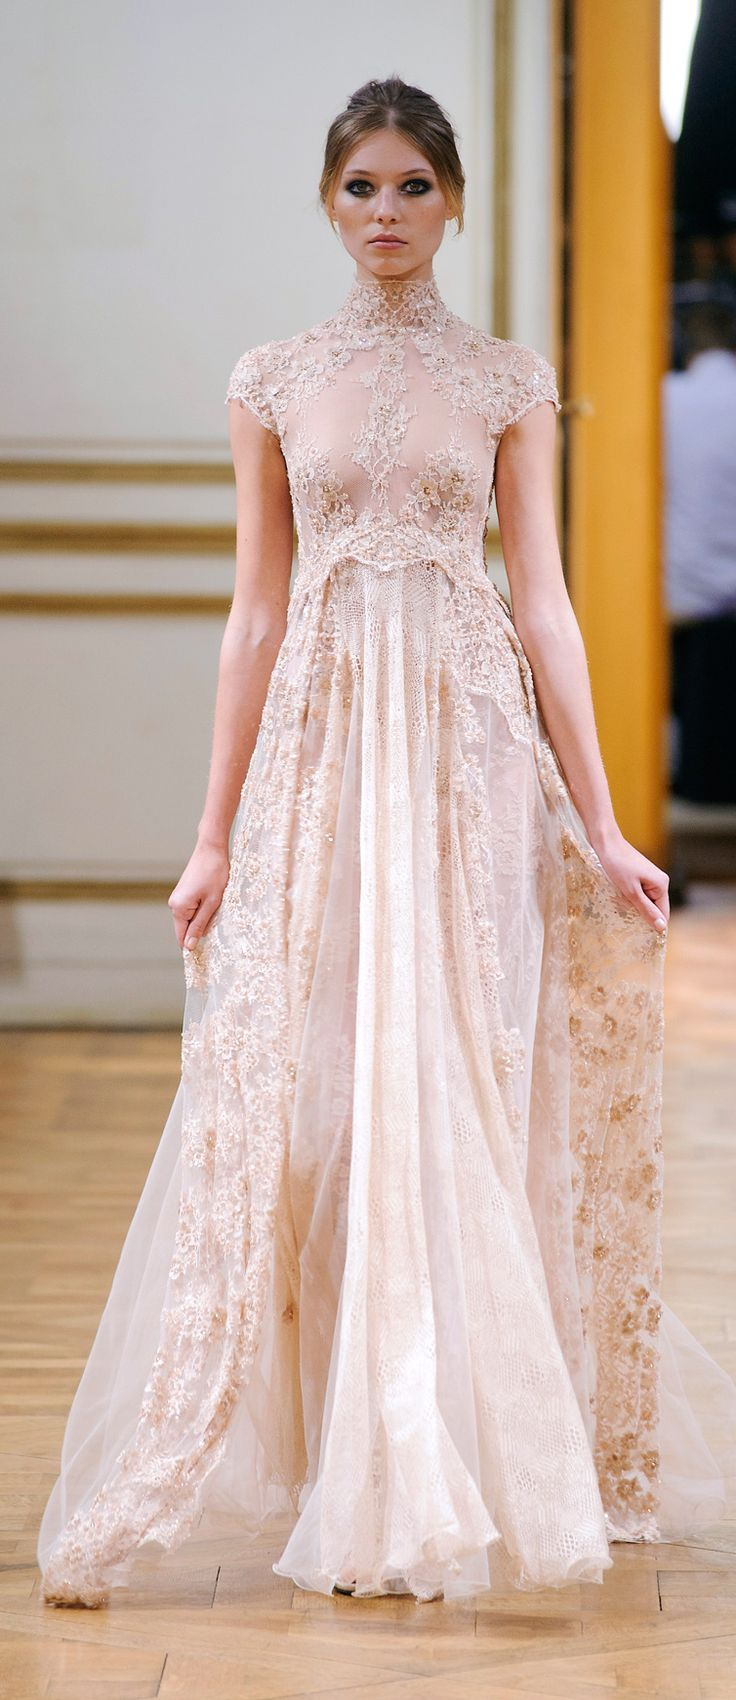 Zuhair Murad Lace Wedding Gown